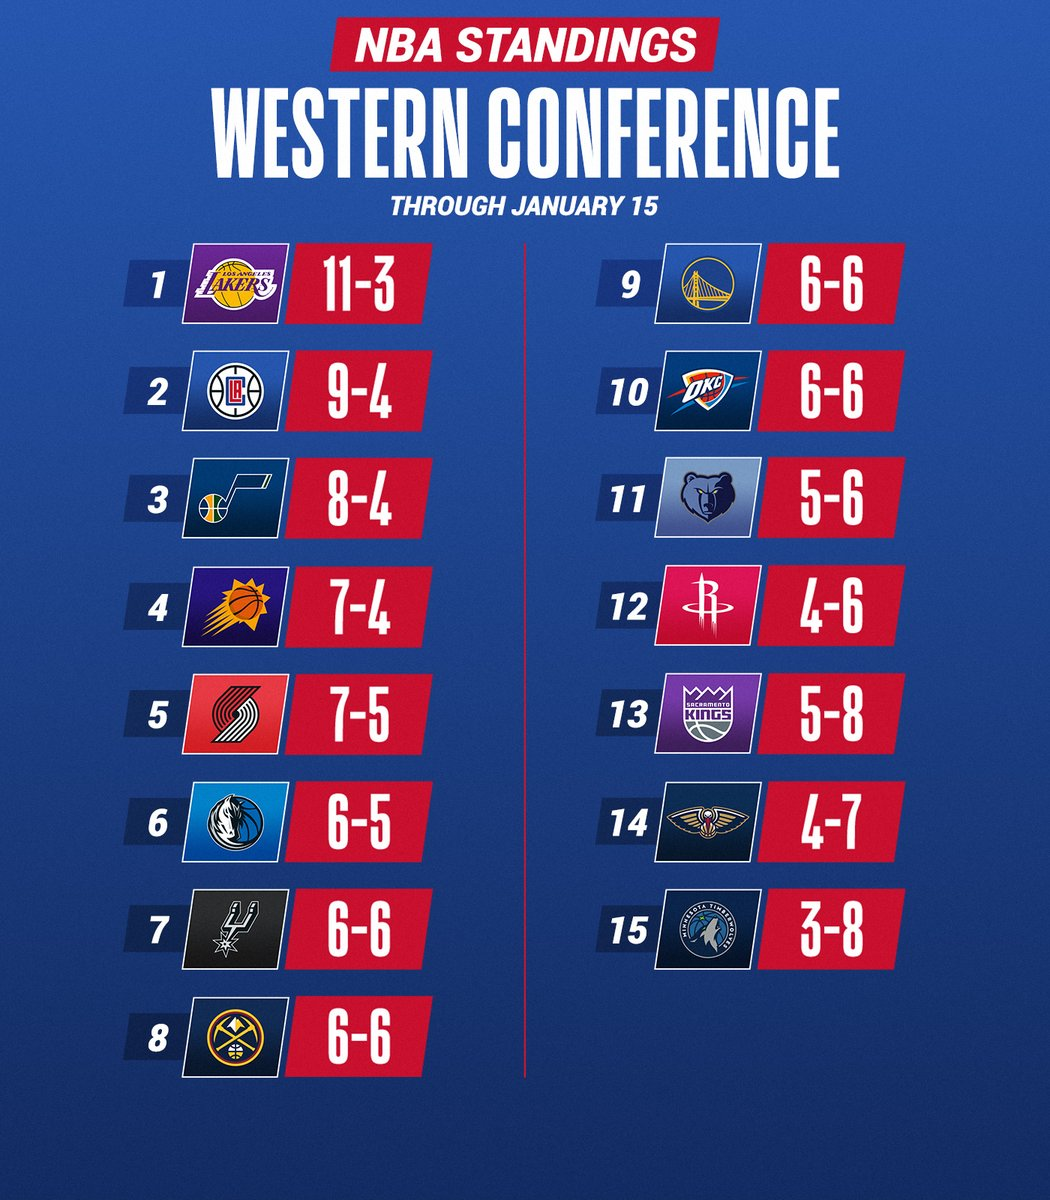 The current NBA Standings through Friday night's action!